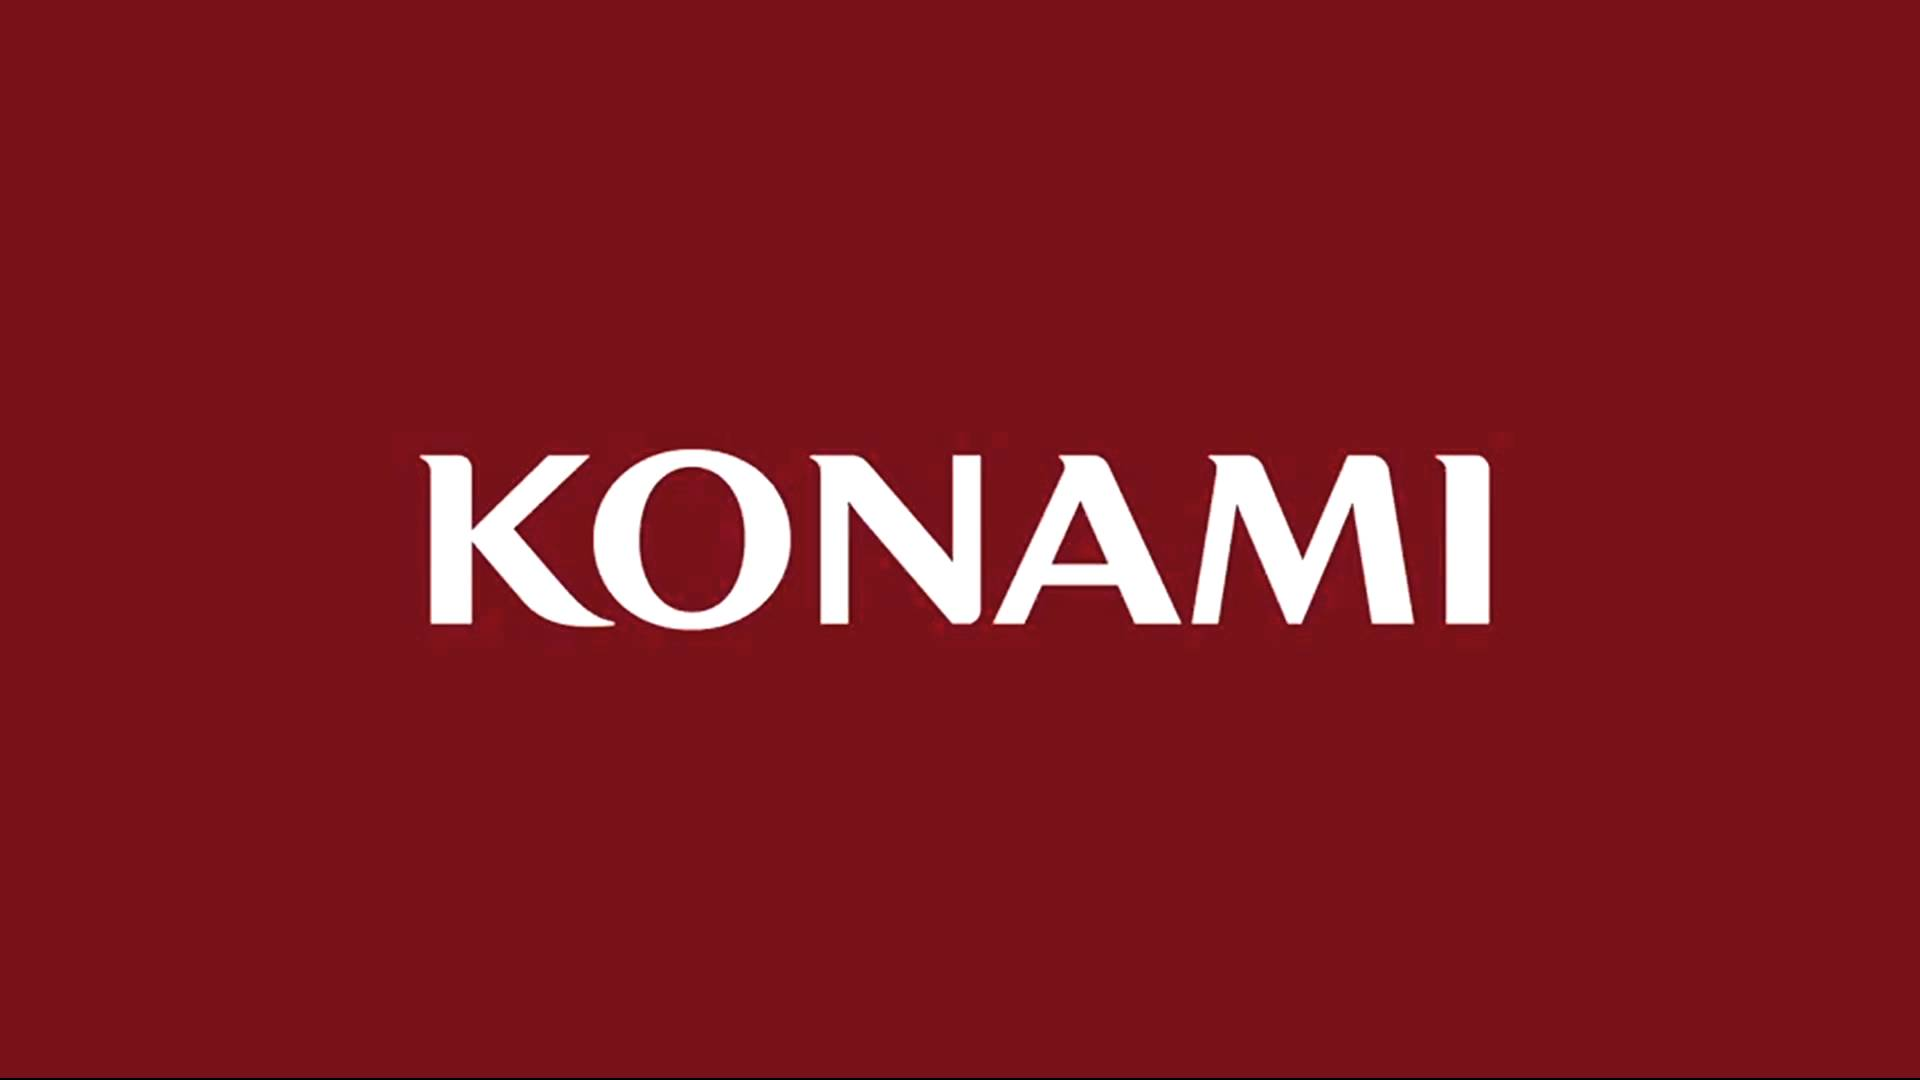 Konami Will Close 31 Mobile Games in Japan - Moving from Premium Mobile to Free-to-play